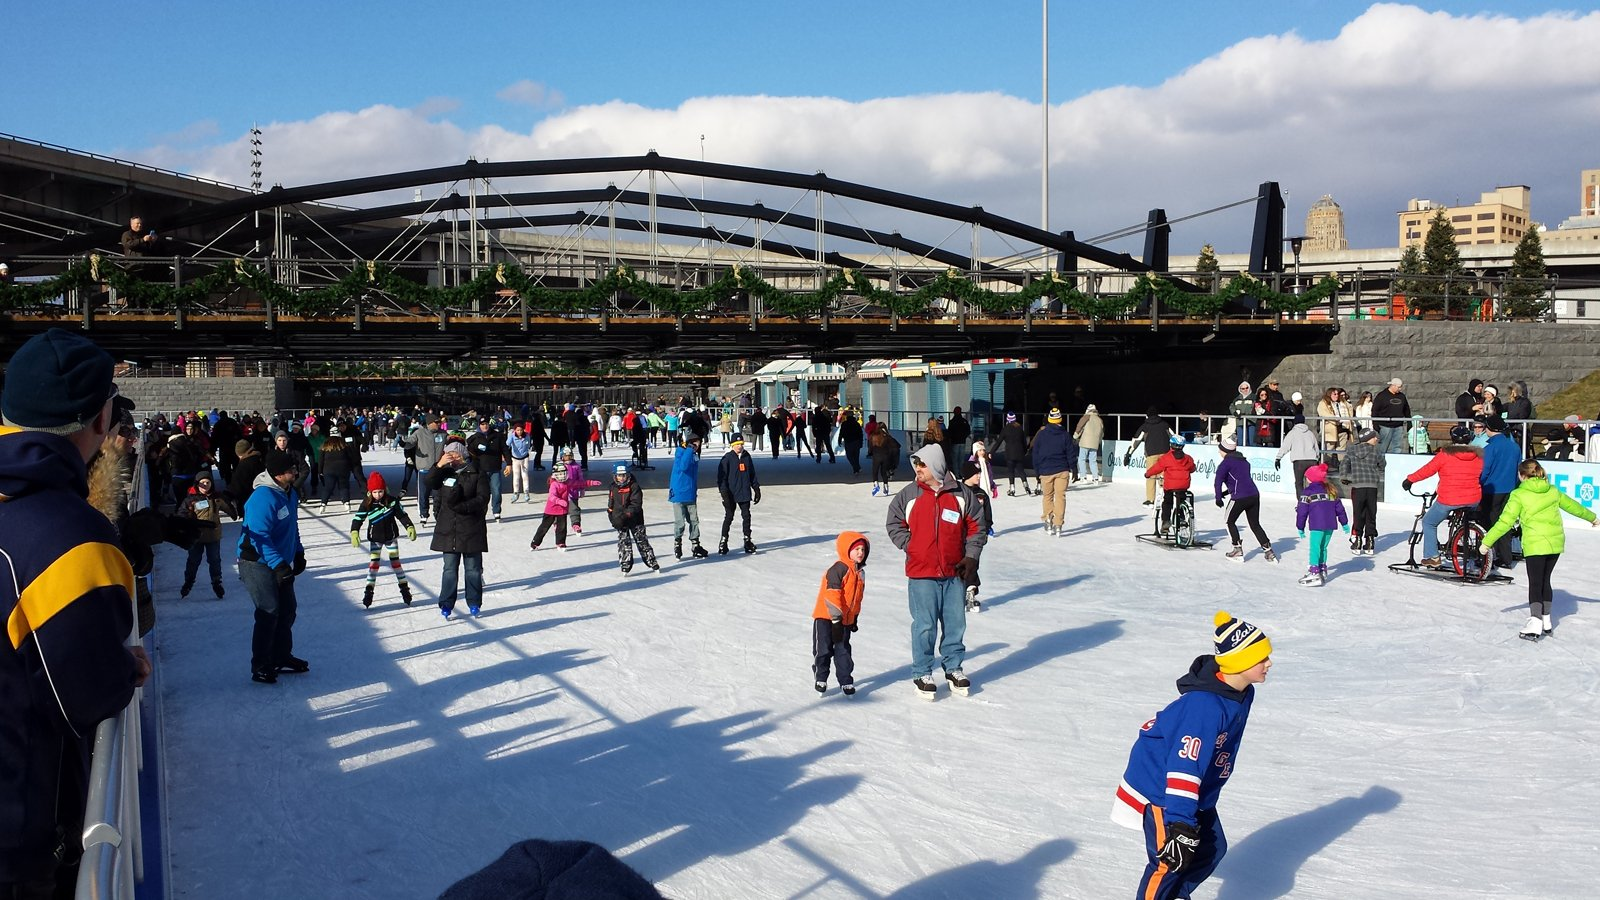 The rink at Canalside Buffalo is like a day at the beach on a cold but sunny January afternoon. Skaters were not deterred by the long line to get in or the chilly wind.